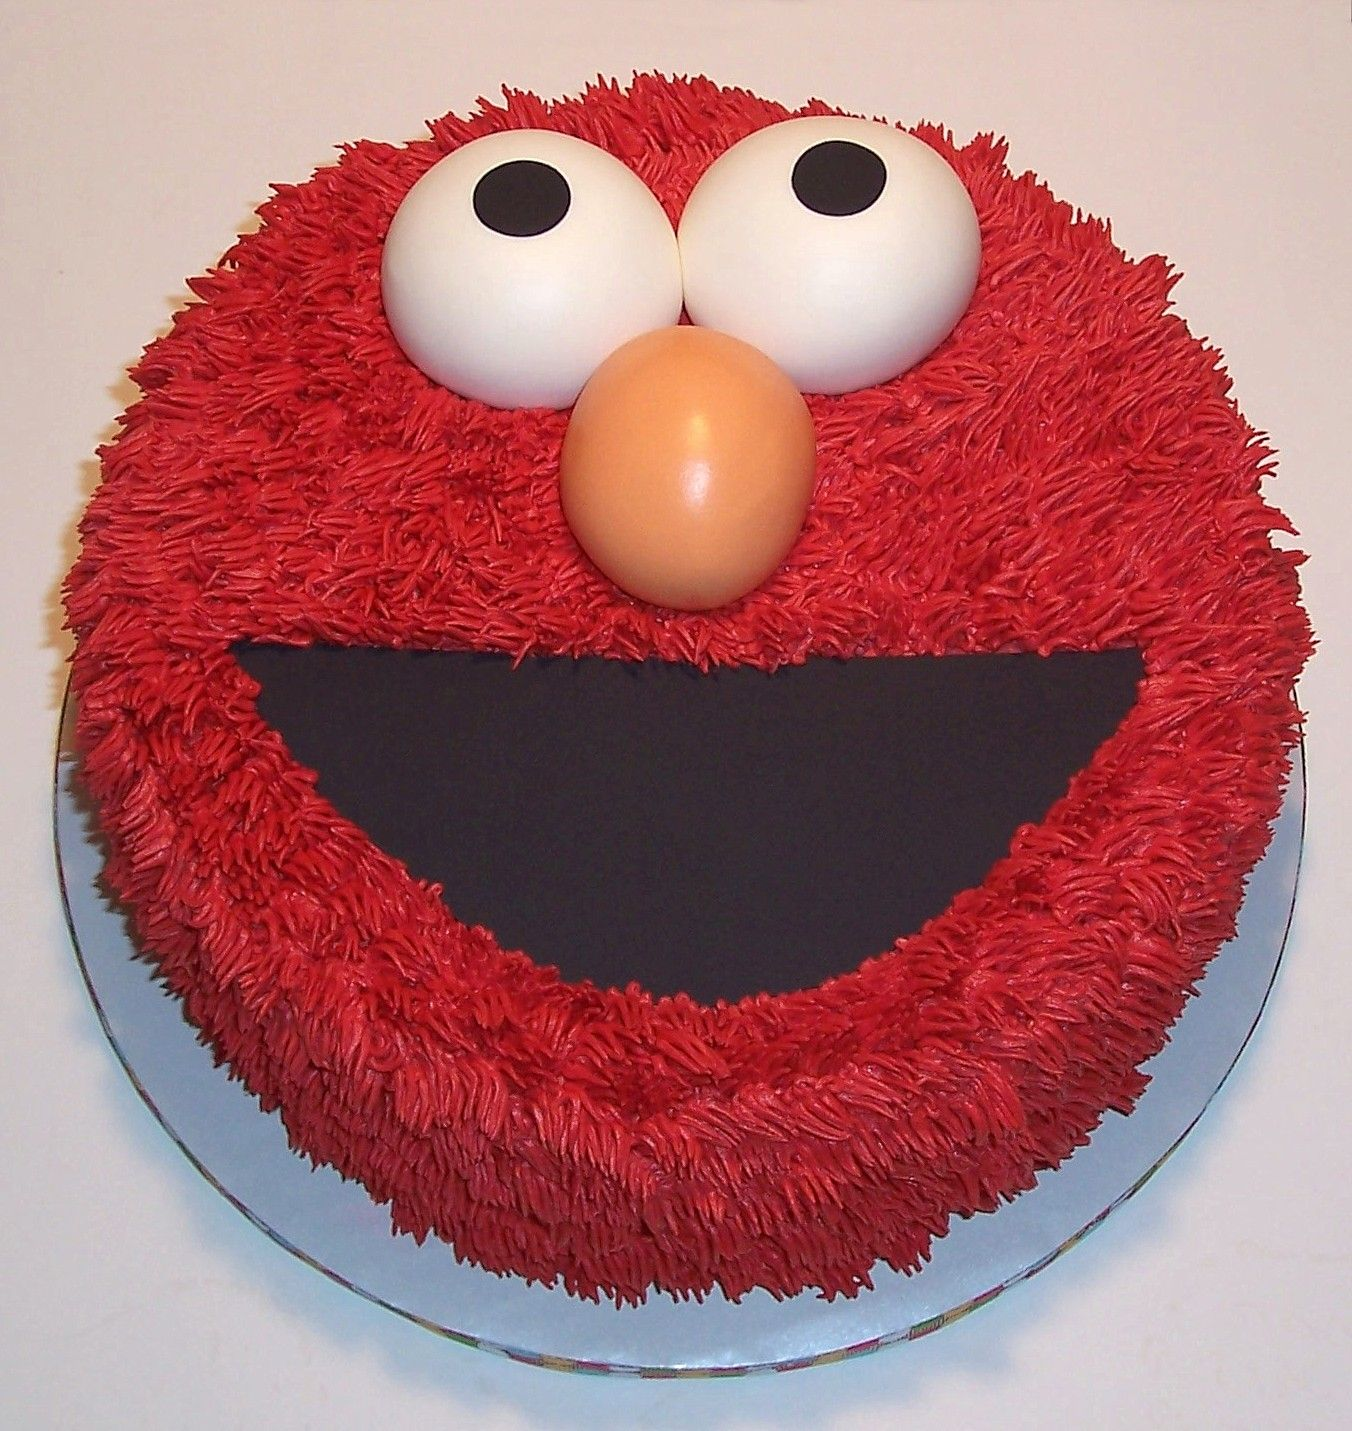 Elmo Cakes for Girls Furry lovable tasty Elmo cakes